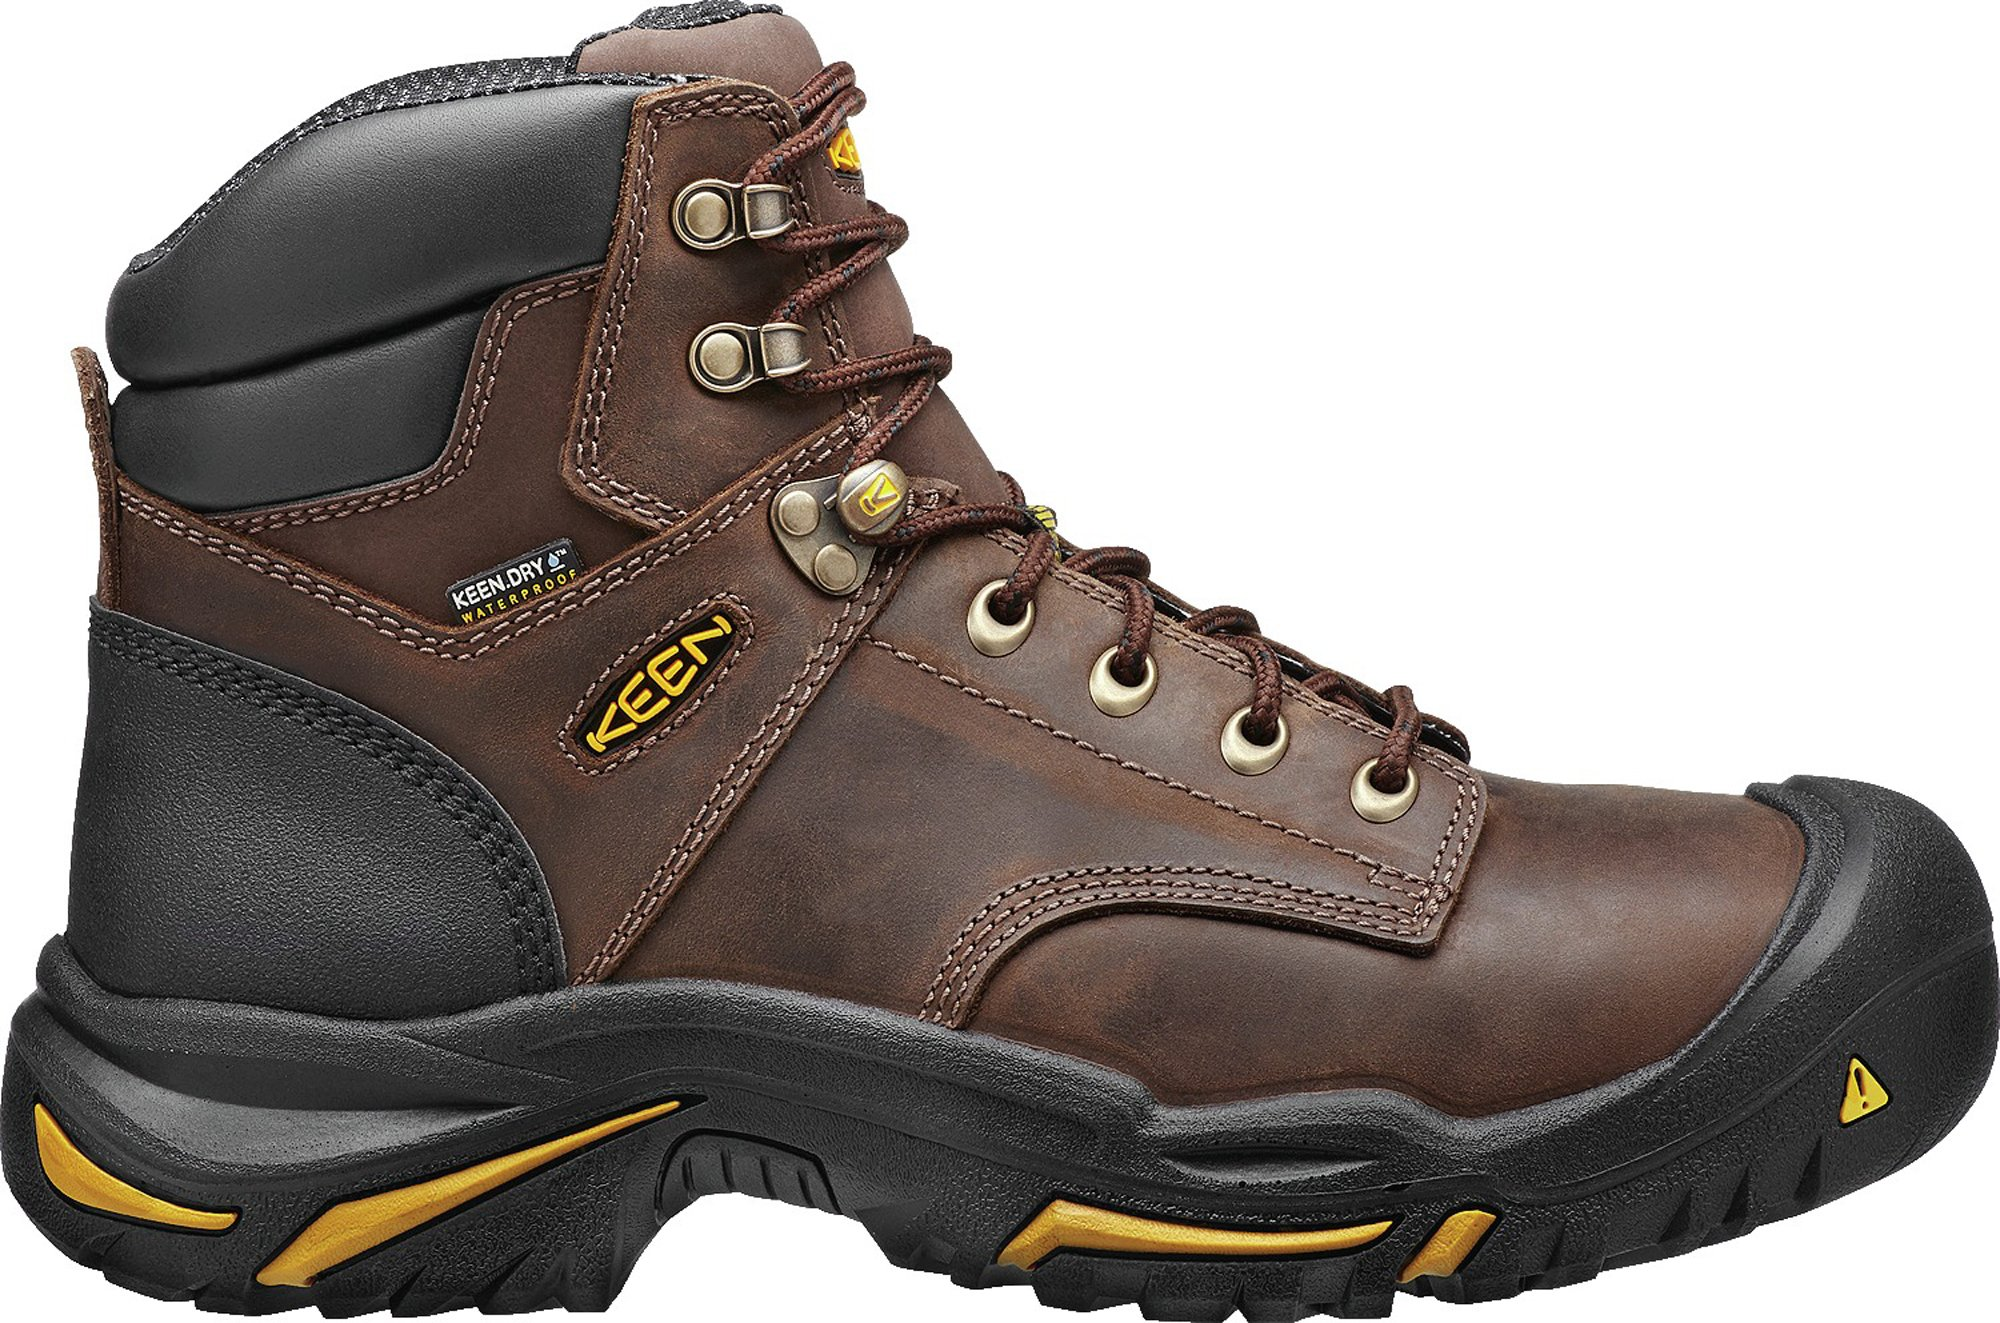 KEEN Utility MT Vernon 6'' Waterproof (Steel Toe), Men's Work Boot, Cascade Brown, 15 EE by KEEN Utility (Image #1)